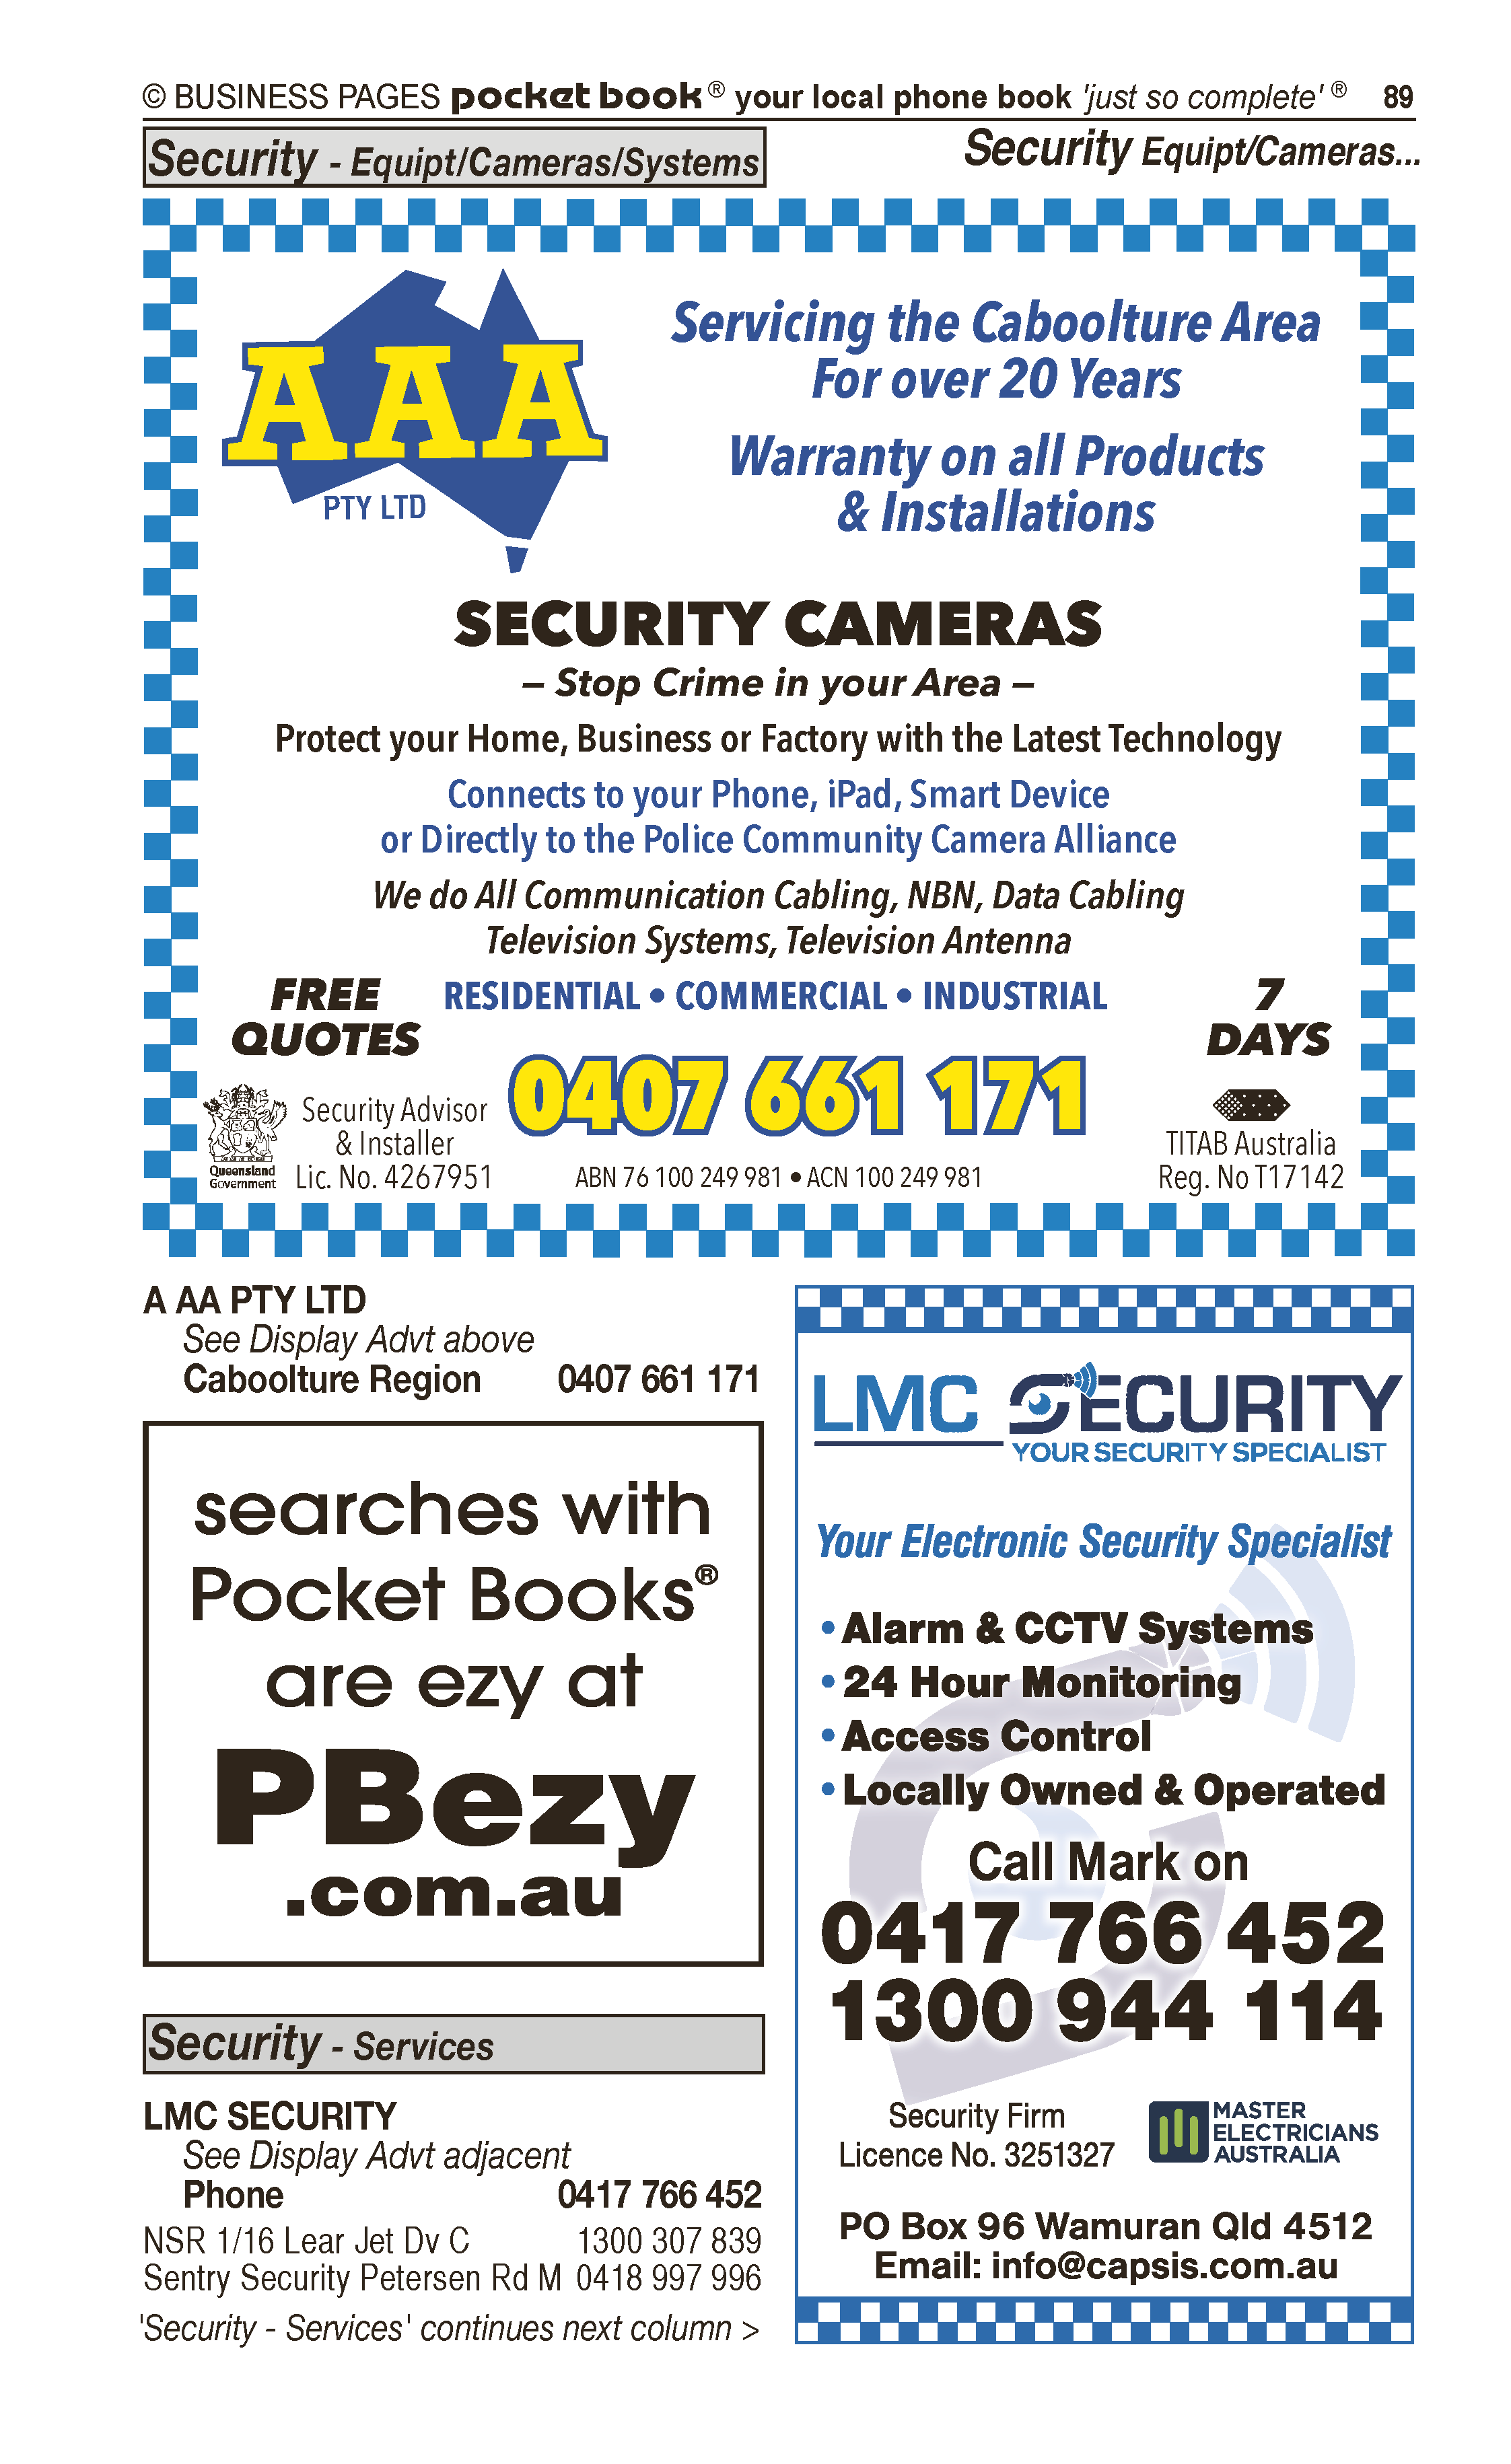 AAA Pty Ltd | Security – Equipment in Caboolture | PBezy Pocket Books local directories - page 89